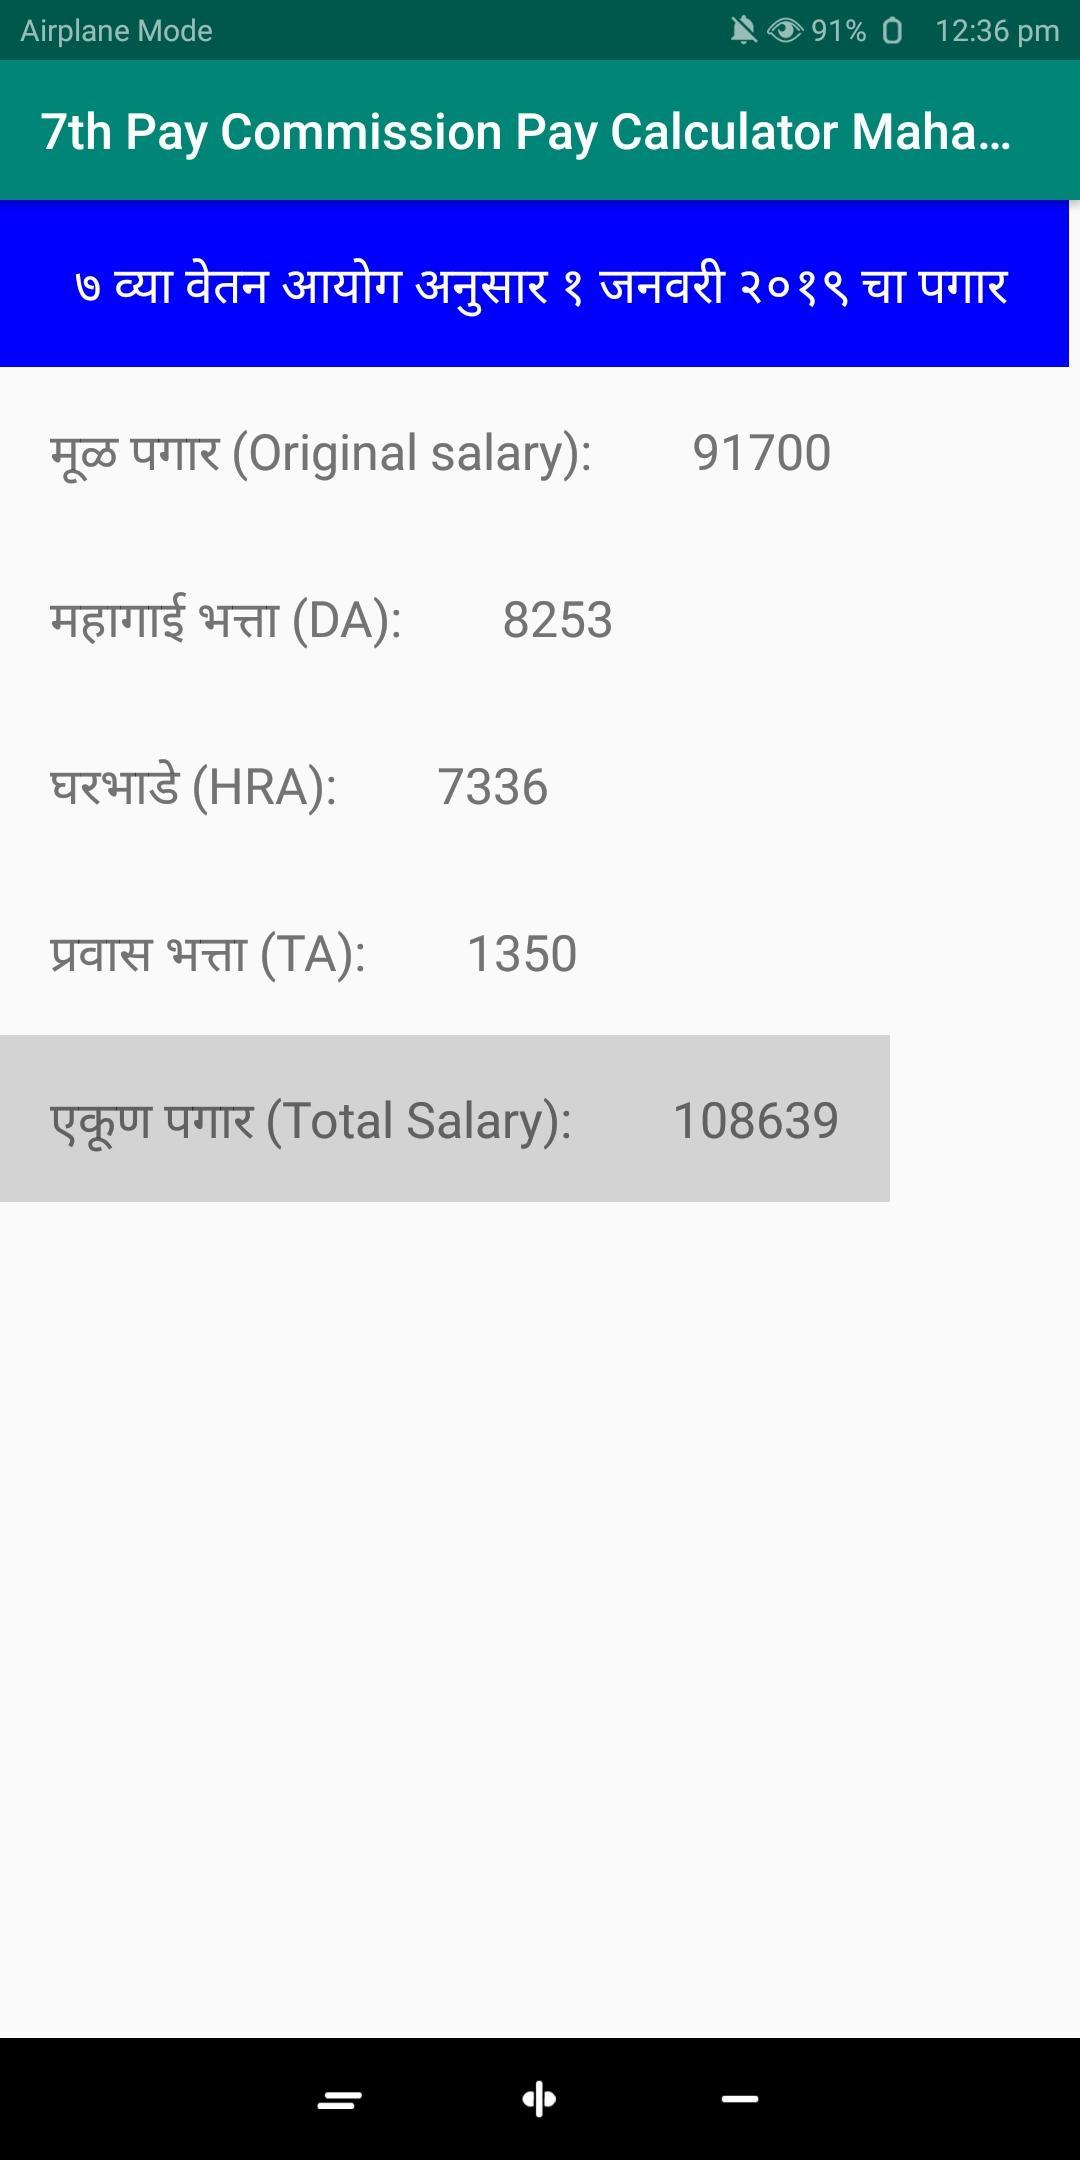 7th Pay Calculator Ṁaharashtra for Android - APK Download